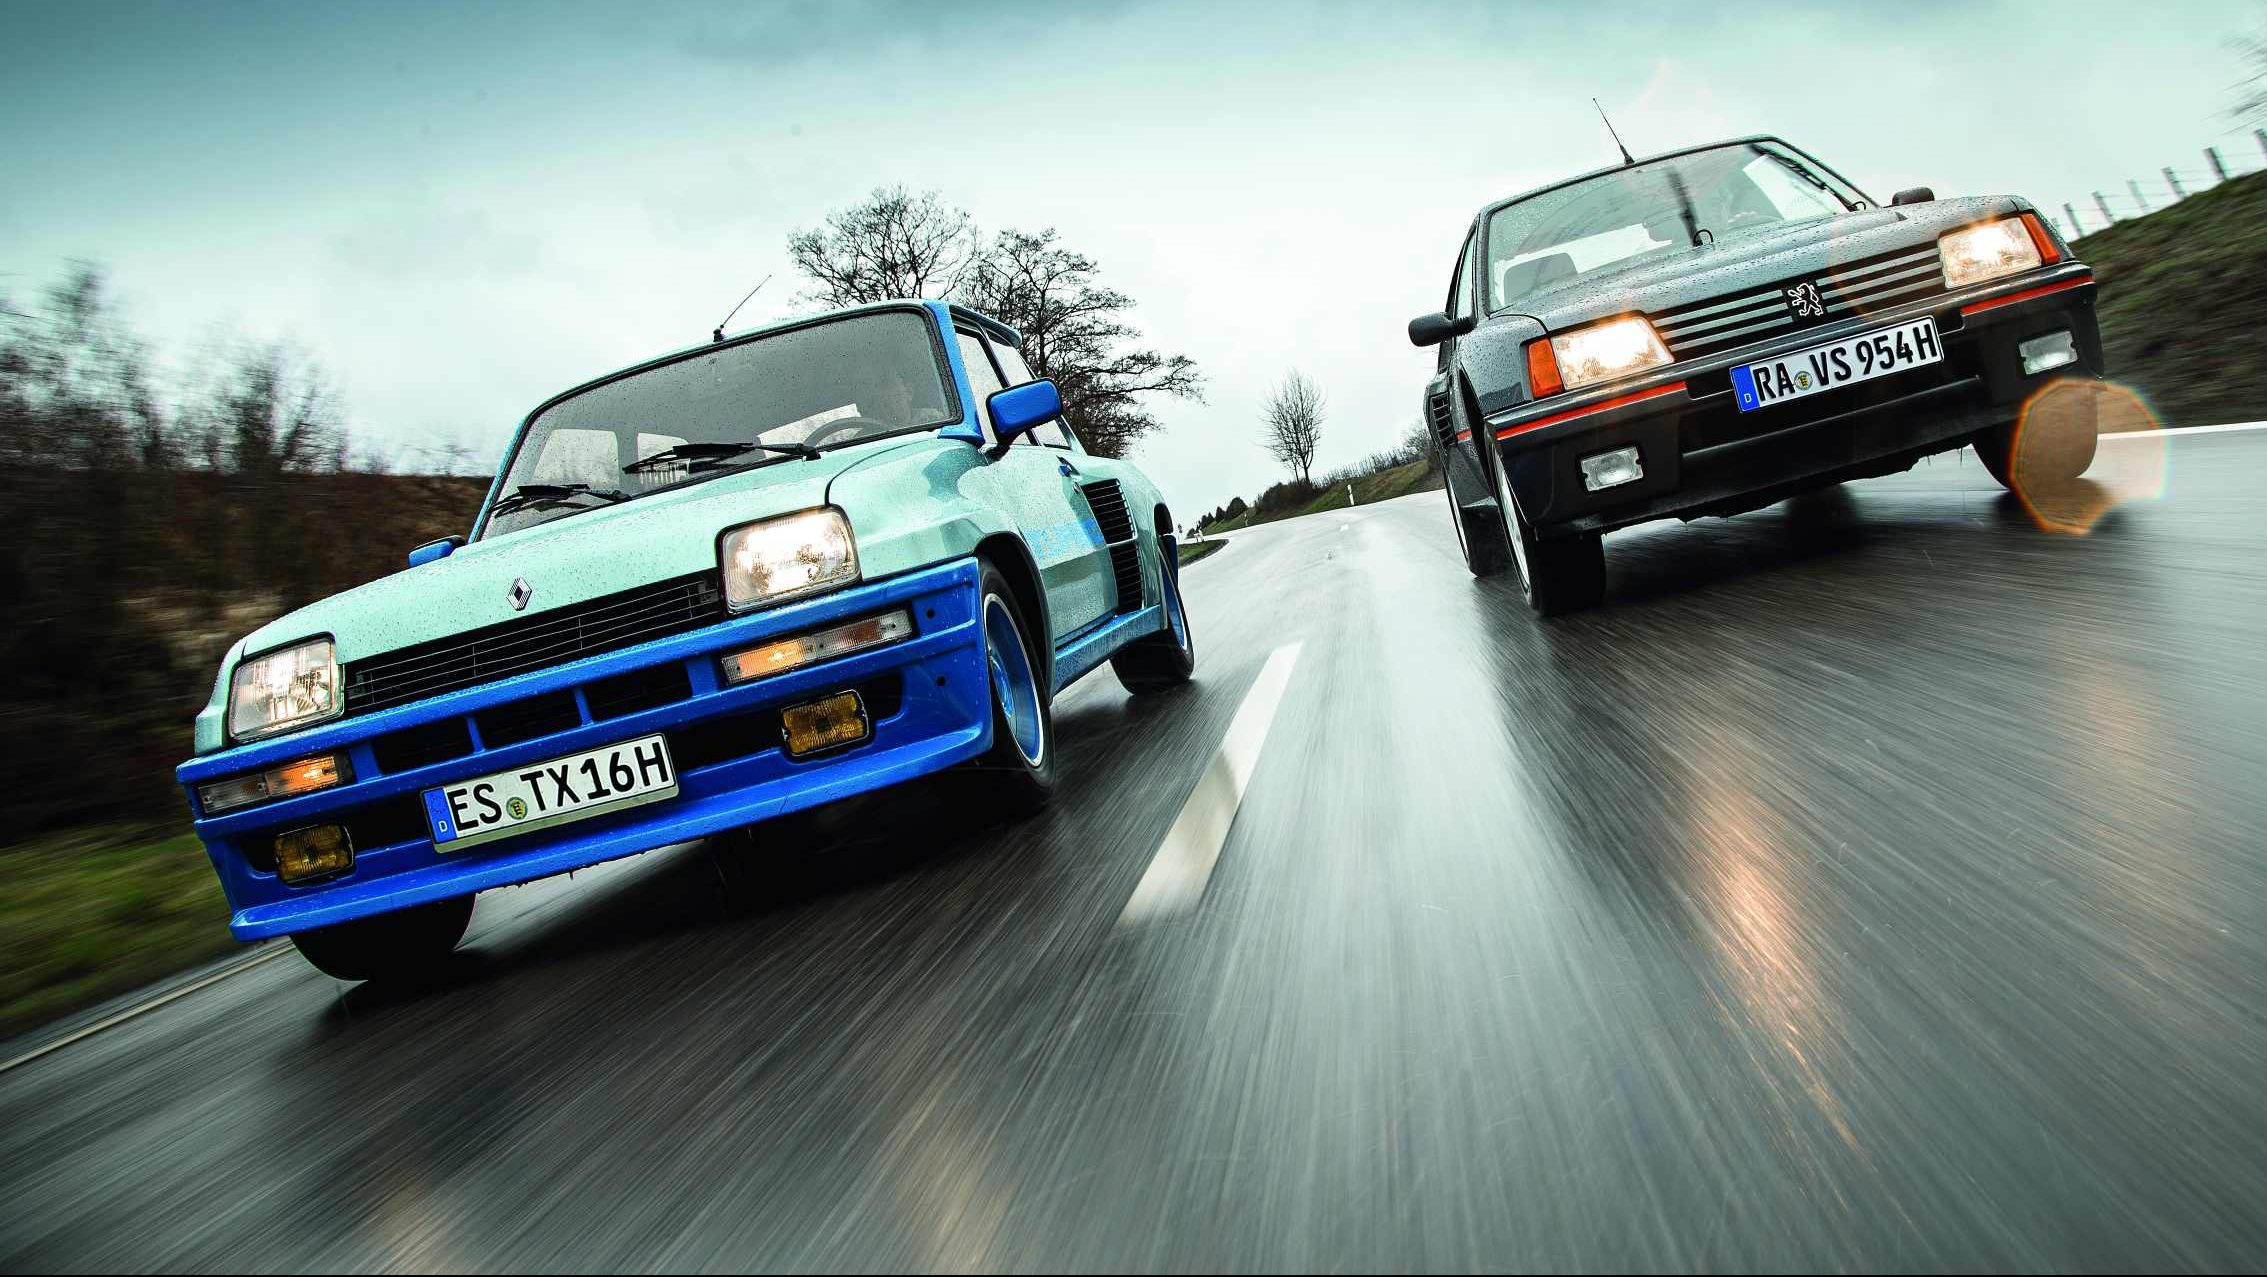 Image forPeugeot 205 Turbo 16 vs. Renault 5 Turbo. Ekskluzivna usporedba legendi!